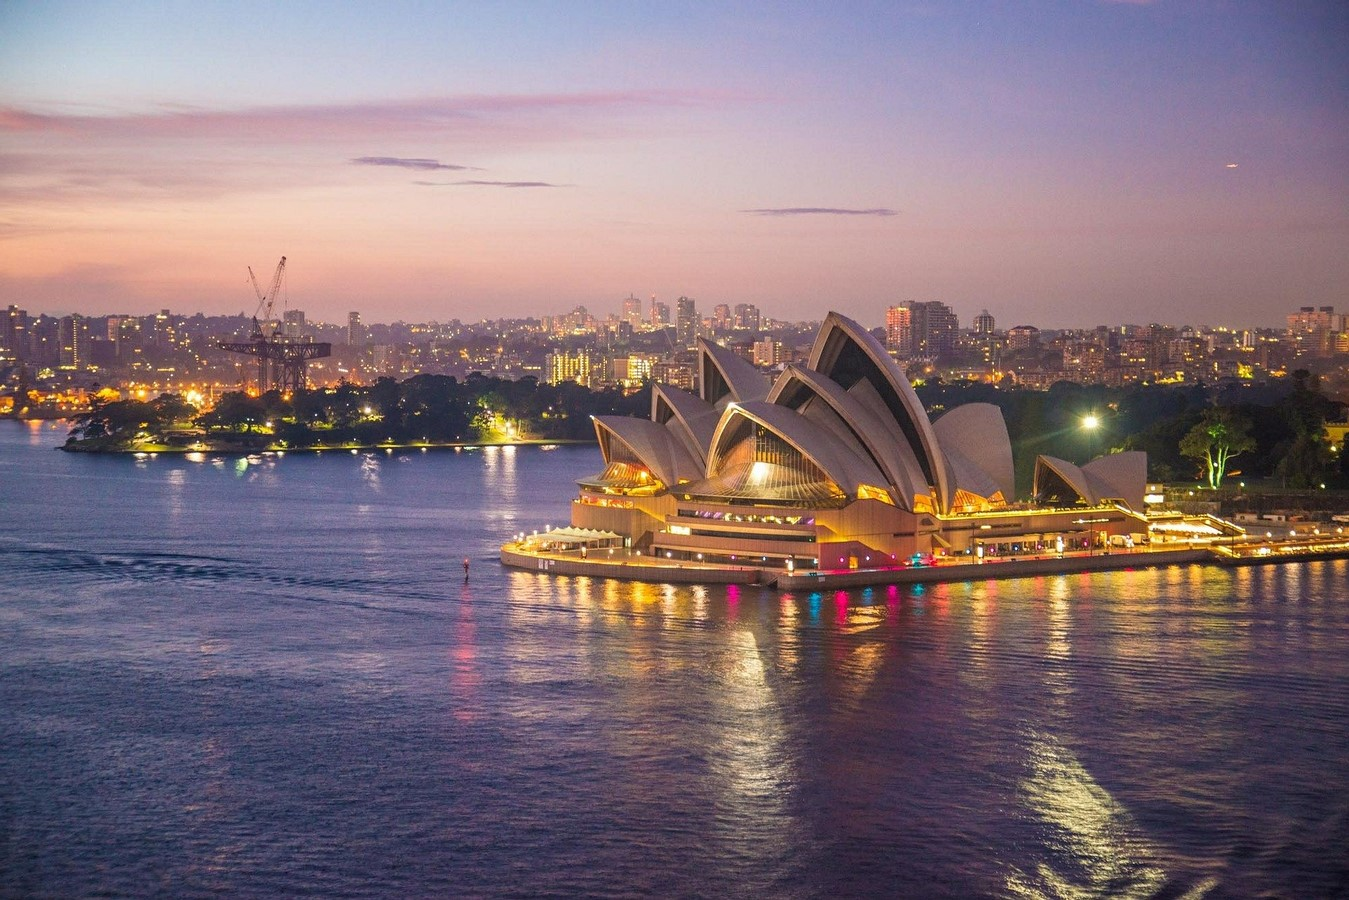 Career options for students after graduation in Australia